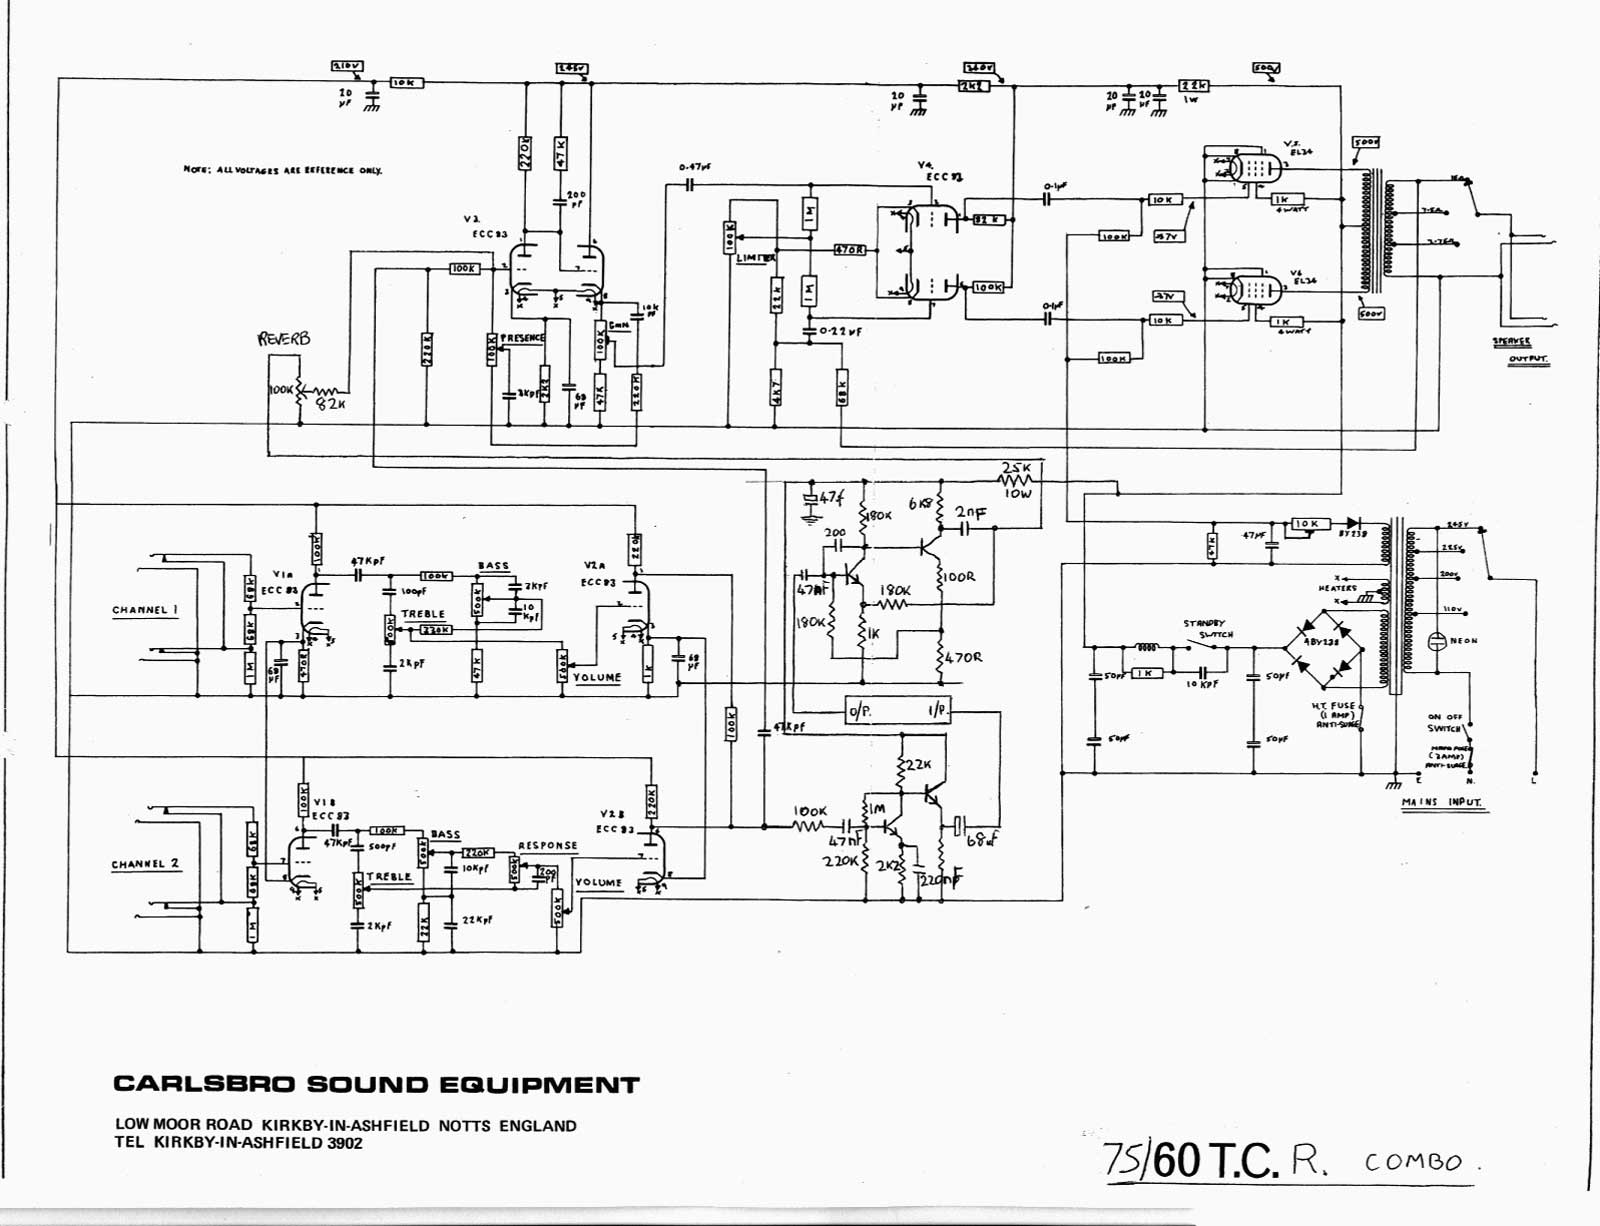 tcs wiring diagram get free image about wiring diagram